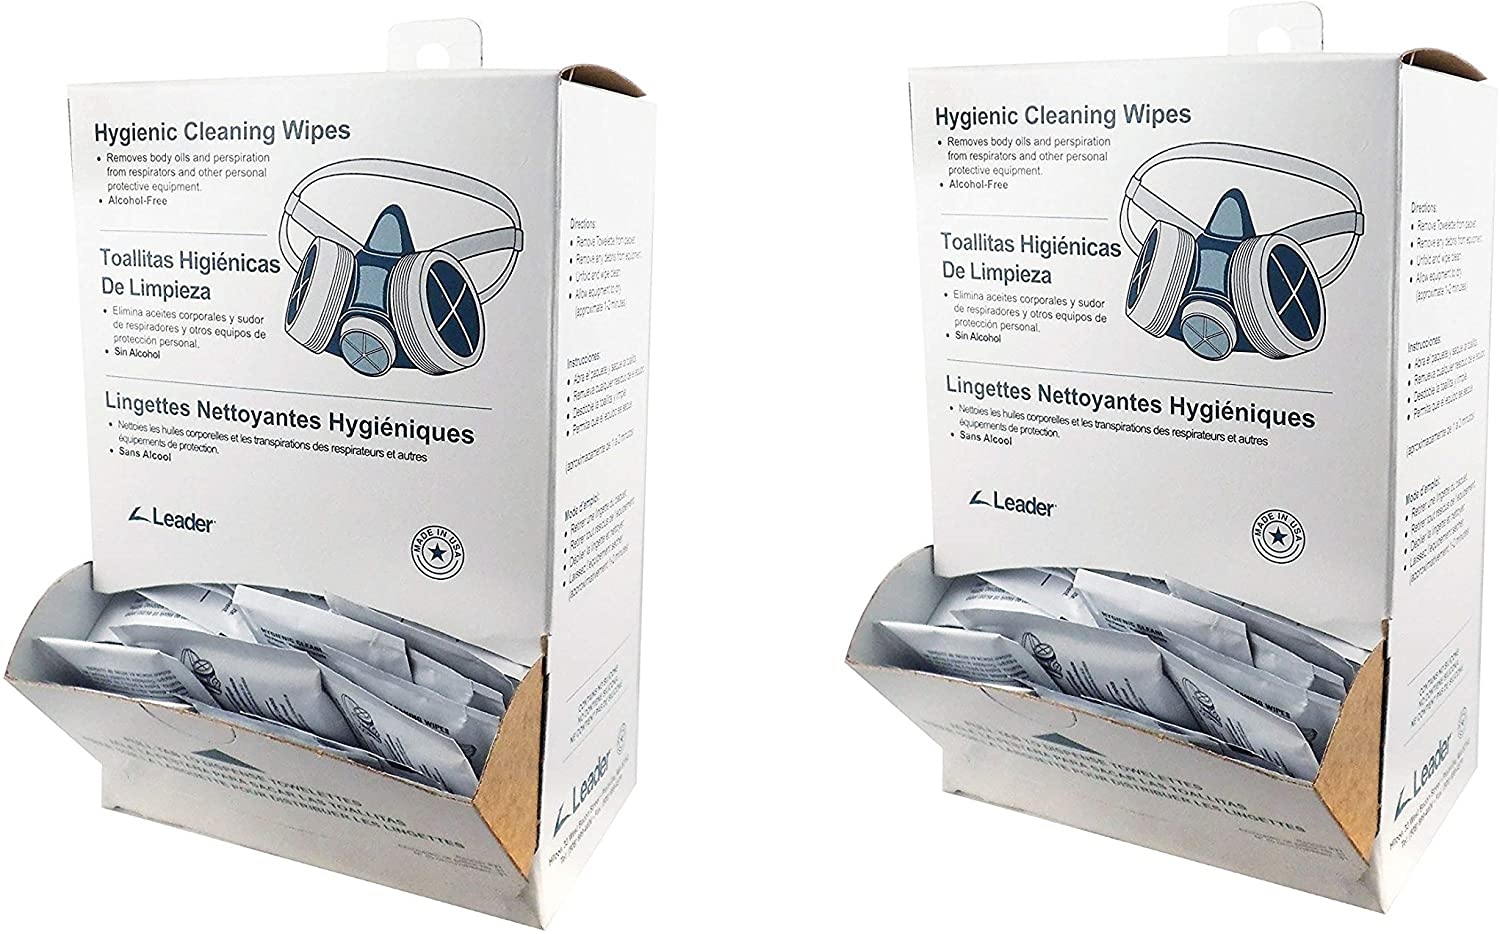 C-Clear 31 Pre-Moistened Respirator Alcohol Free Hygienic Cleaning Wipe Dispenser (Pack of 100) (2-Pack)